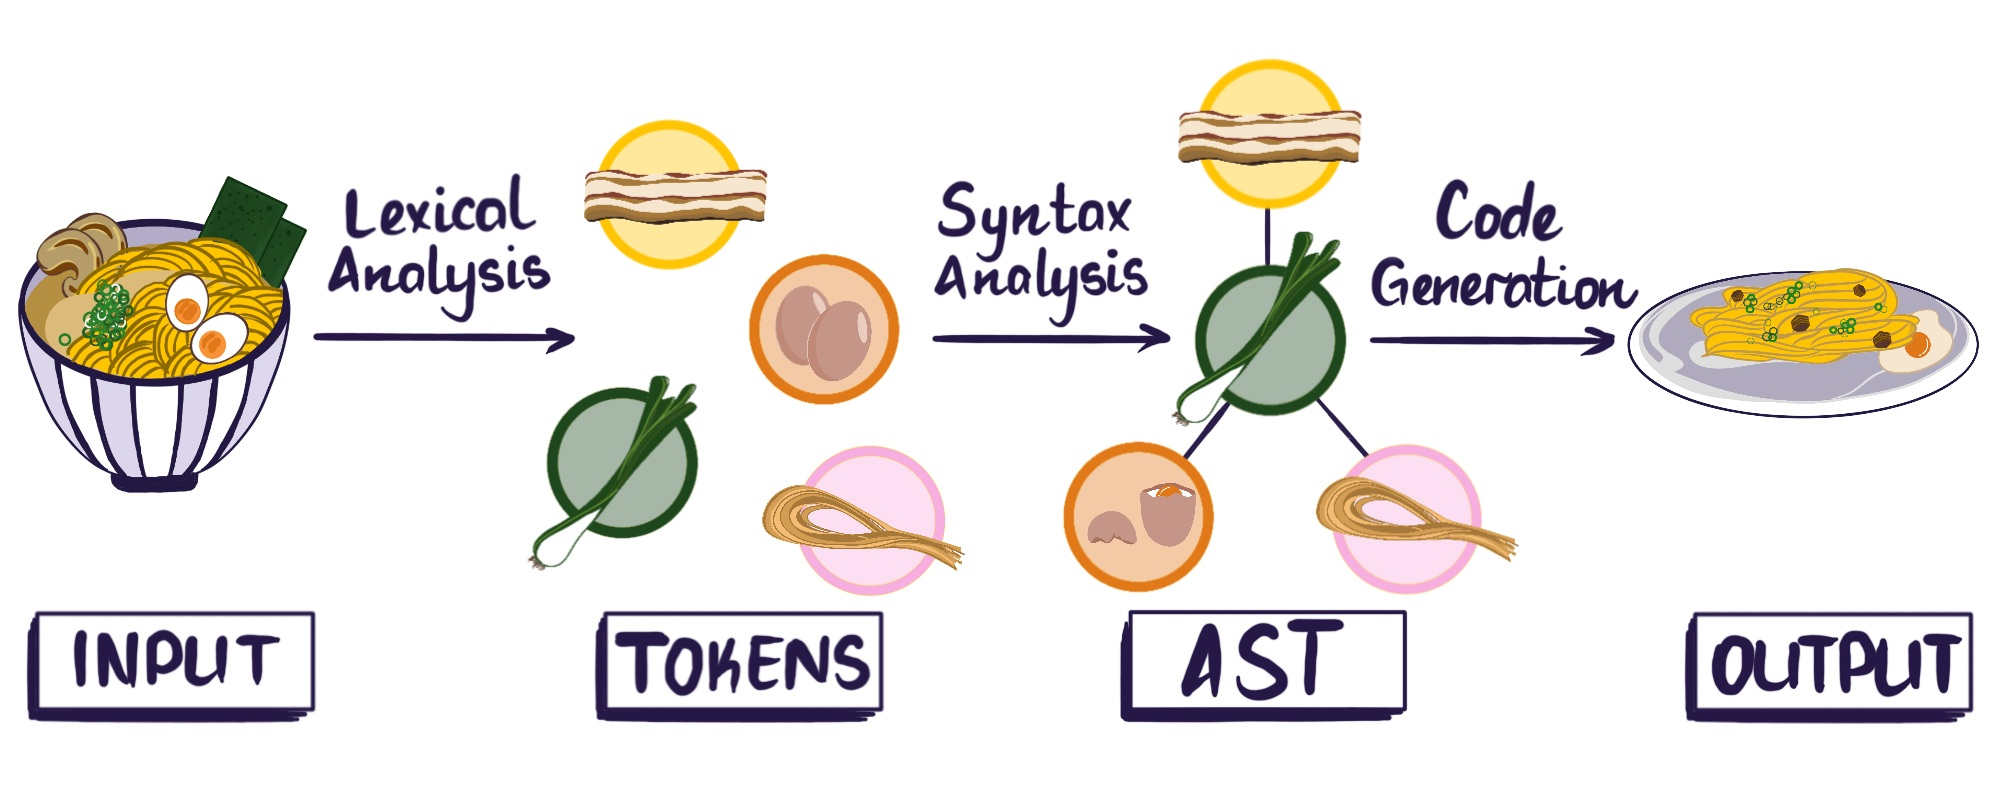 Stages of compiler processing: Input is transformed via lexical analysis into tokens, tokens are transformed via syntax analysis into an AST which is used to generate the output code